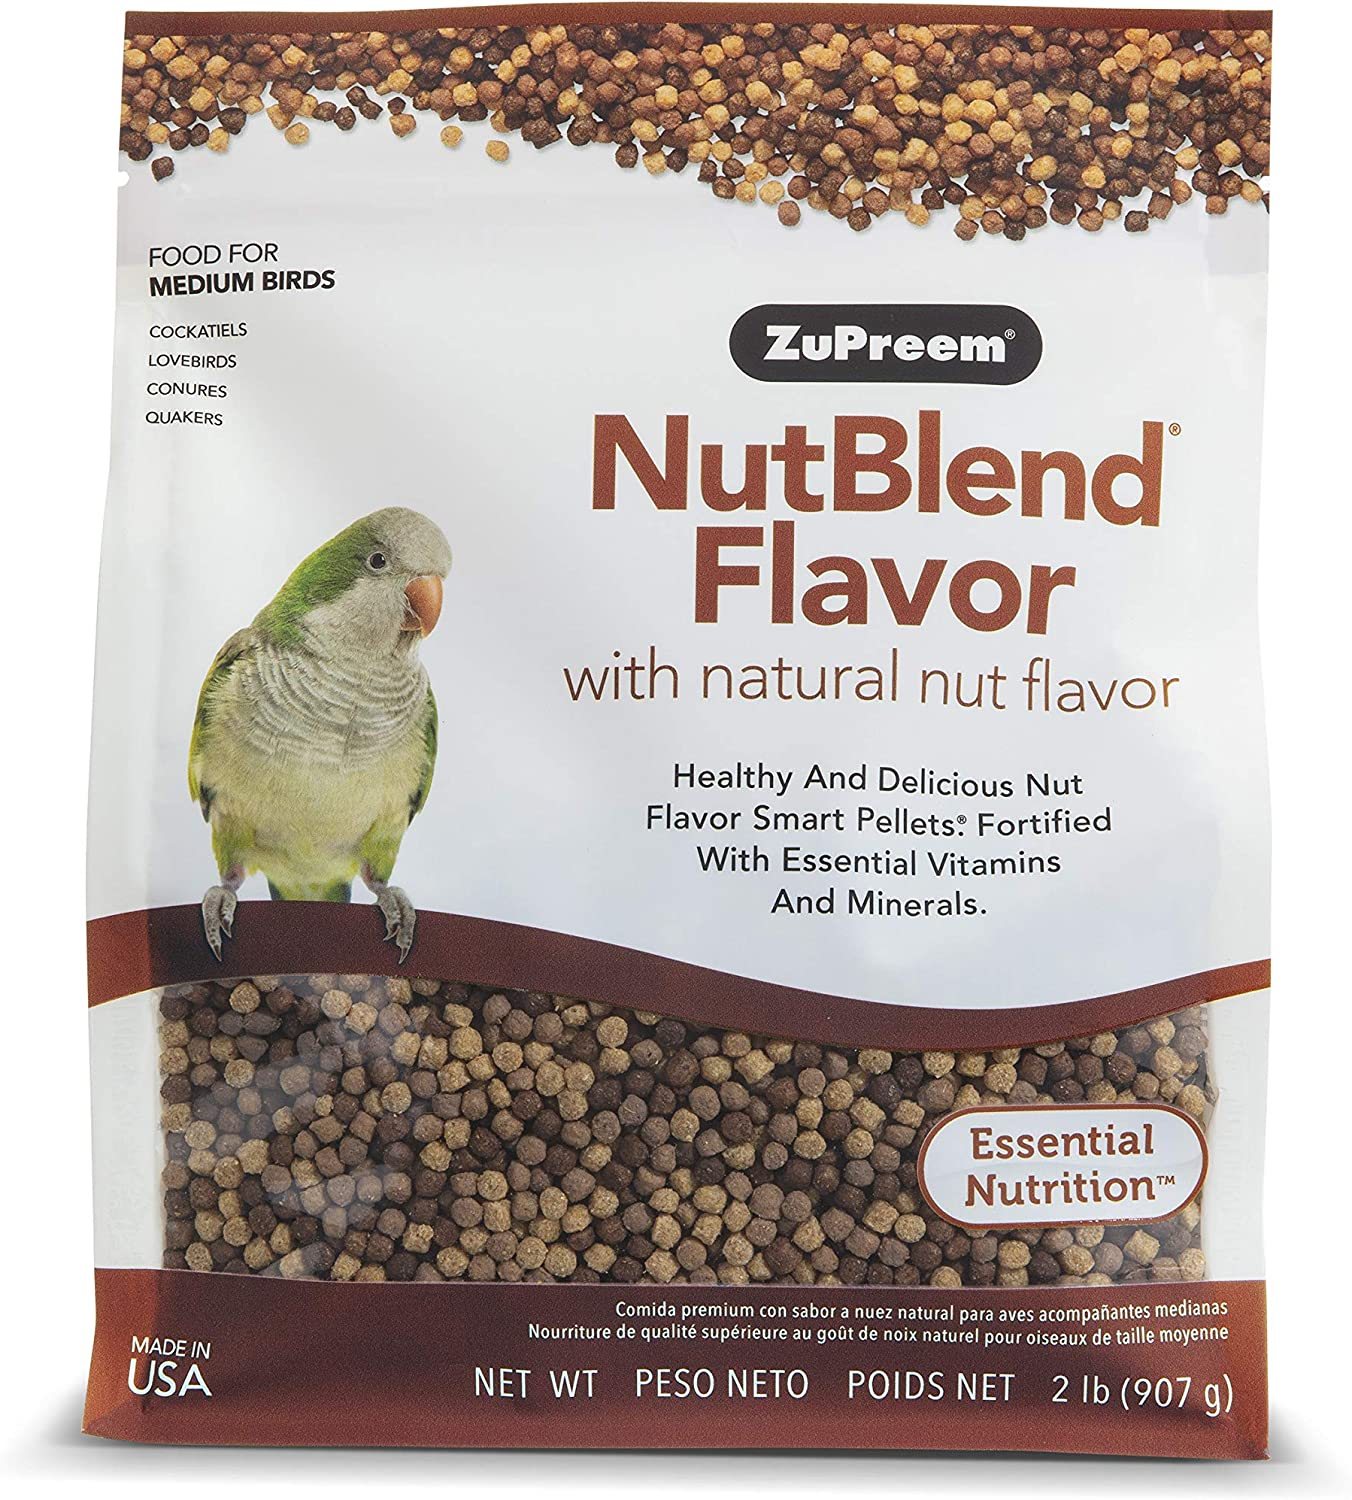 ZuPreem NutBlend for Medium Birds